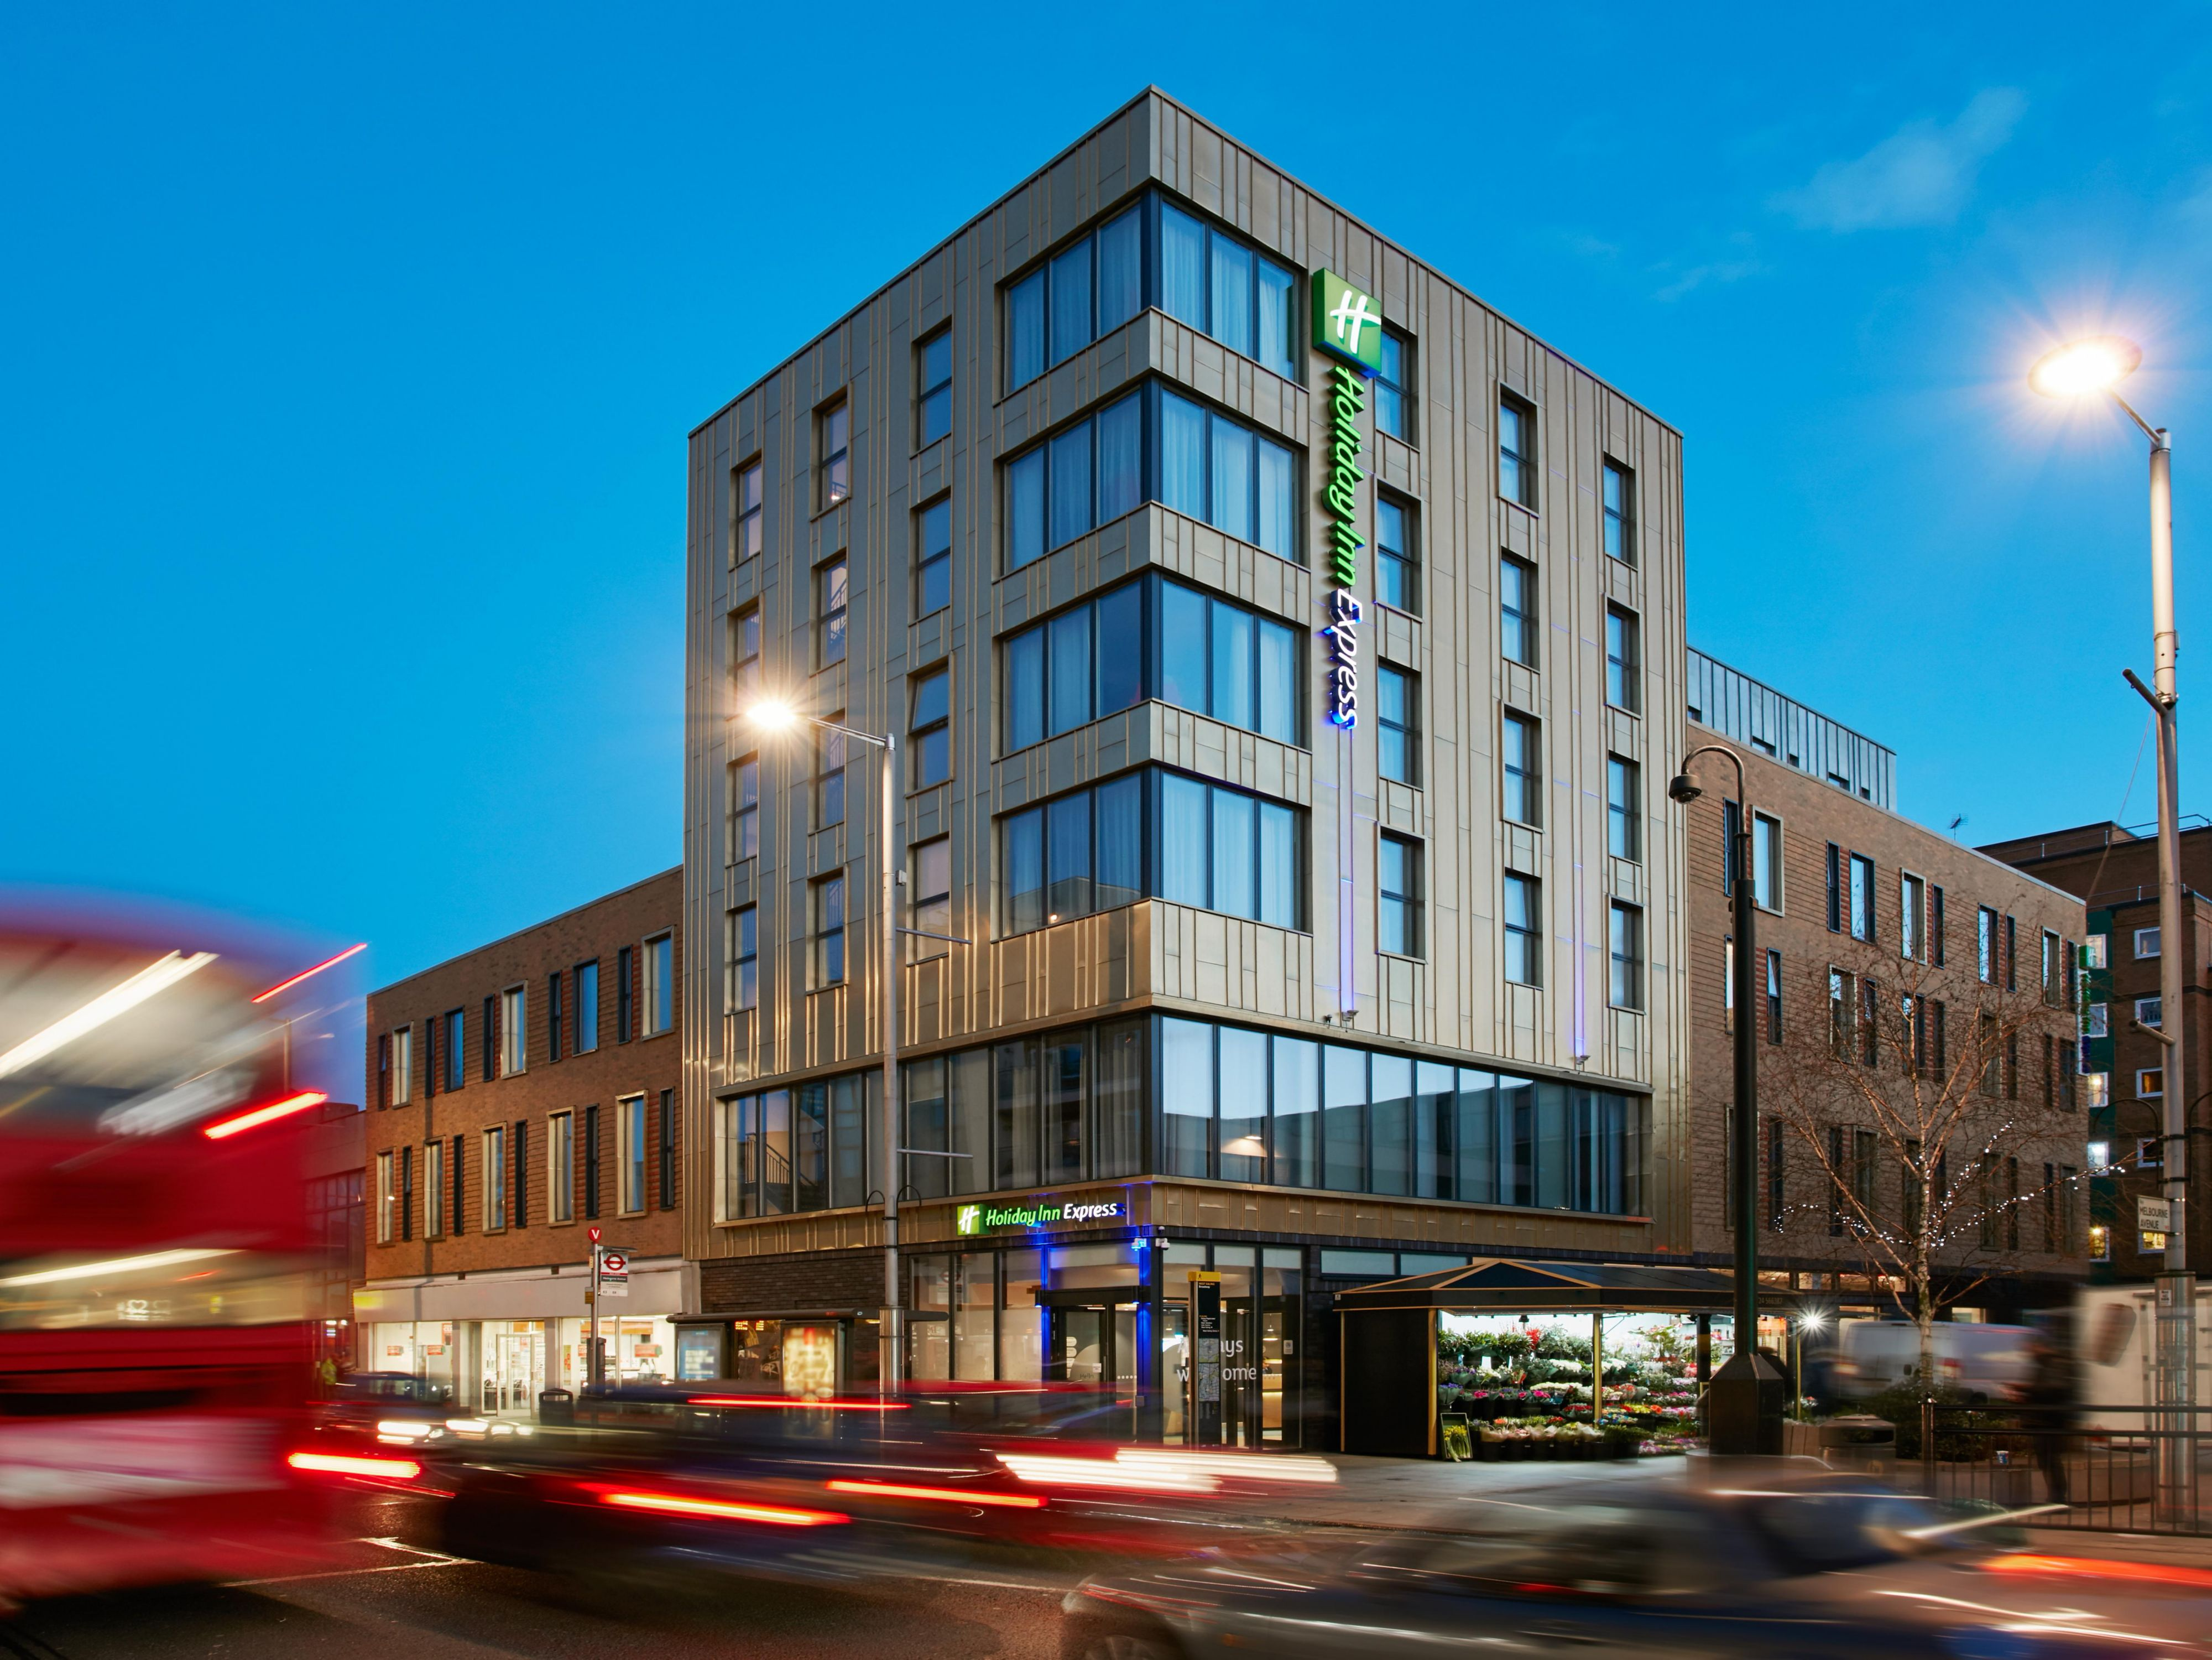 Holiday Inn Express London Hotels | Budget Hotels in London by IHG